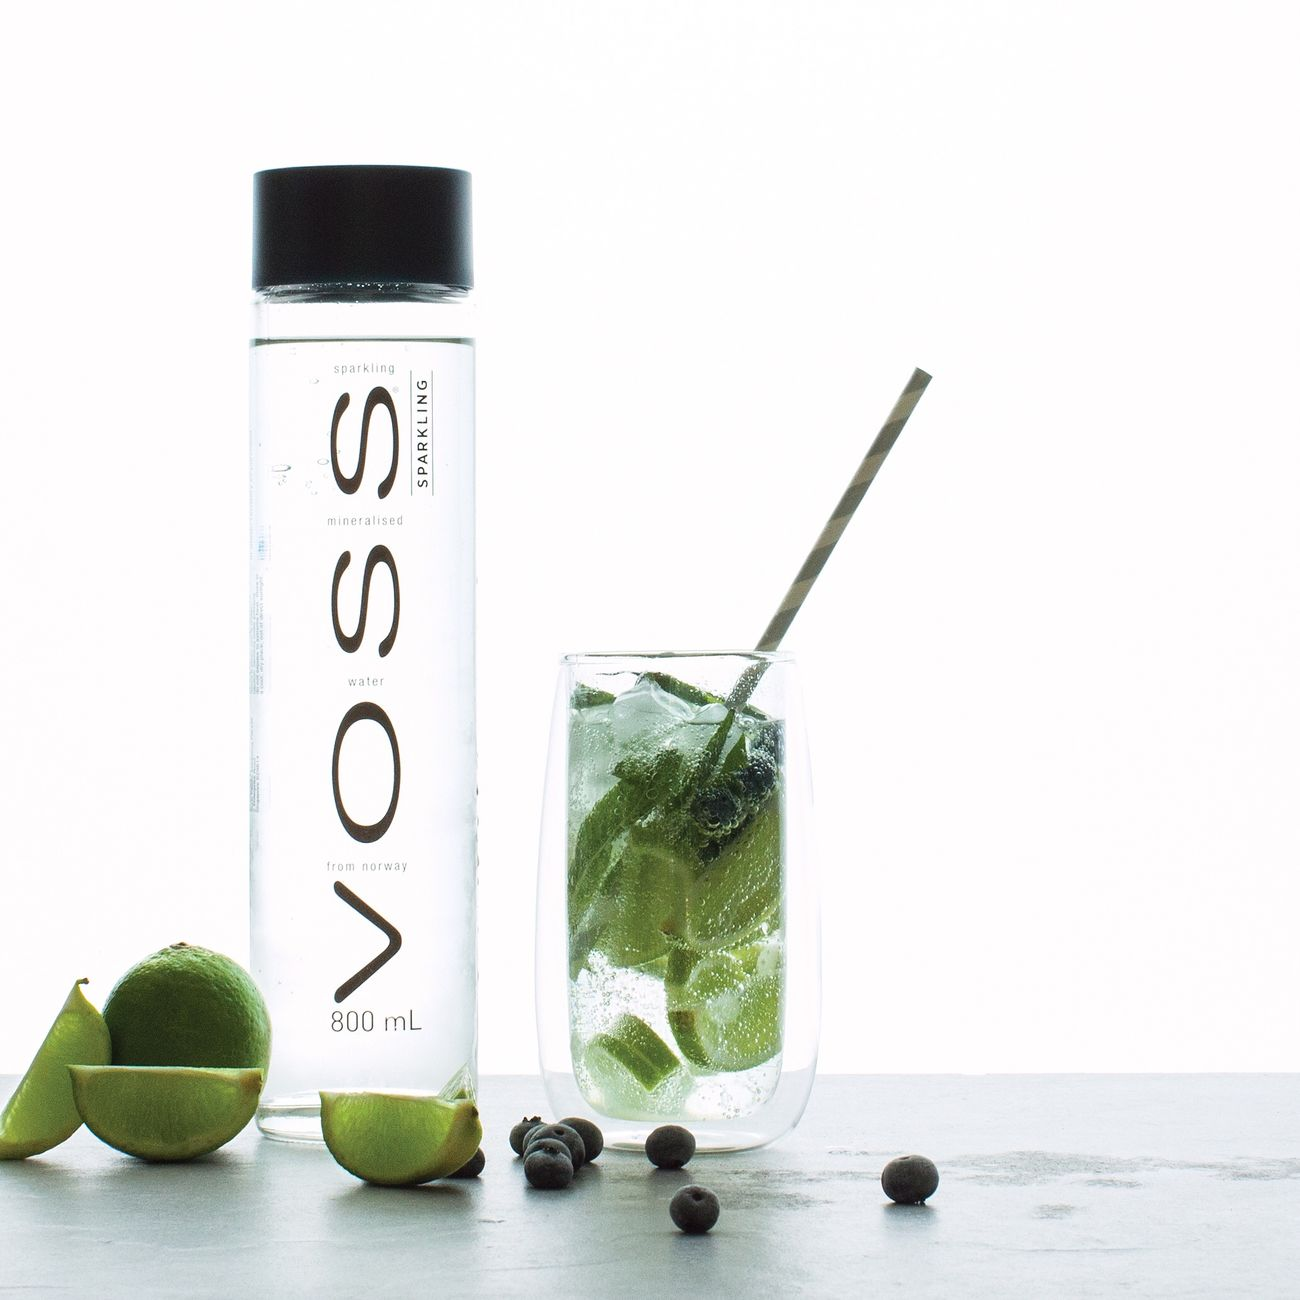 I've knocked back three of these due to the heat wave in Sydney today. I'm so addictive to beautiful packaging. VOSS Voss Water  Heatwave Hanging Out